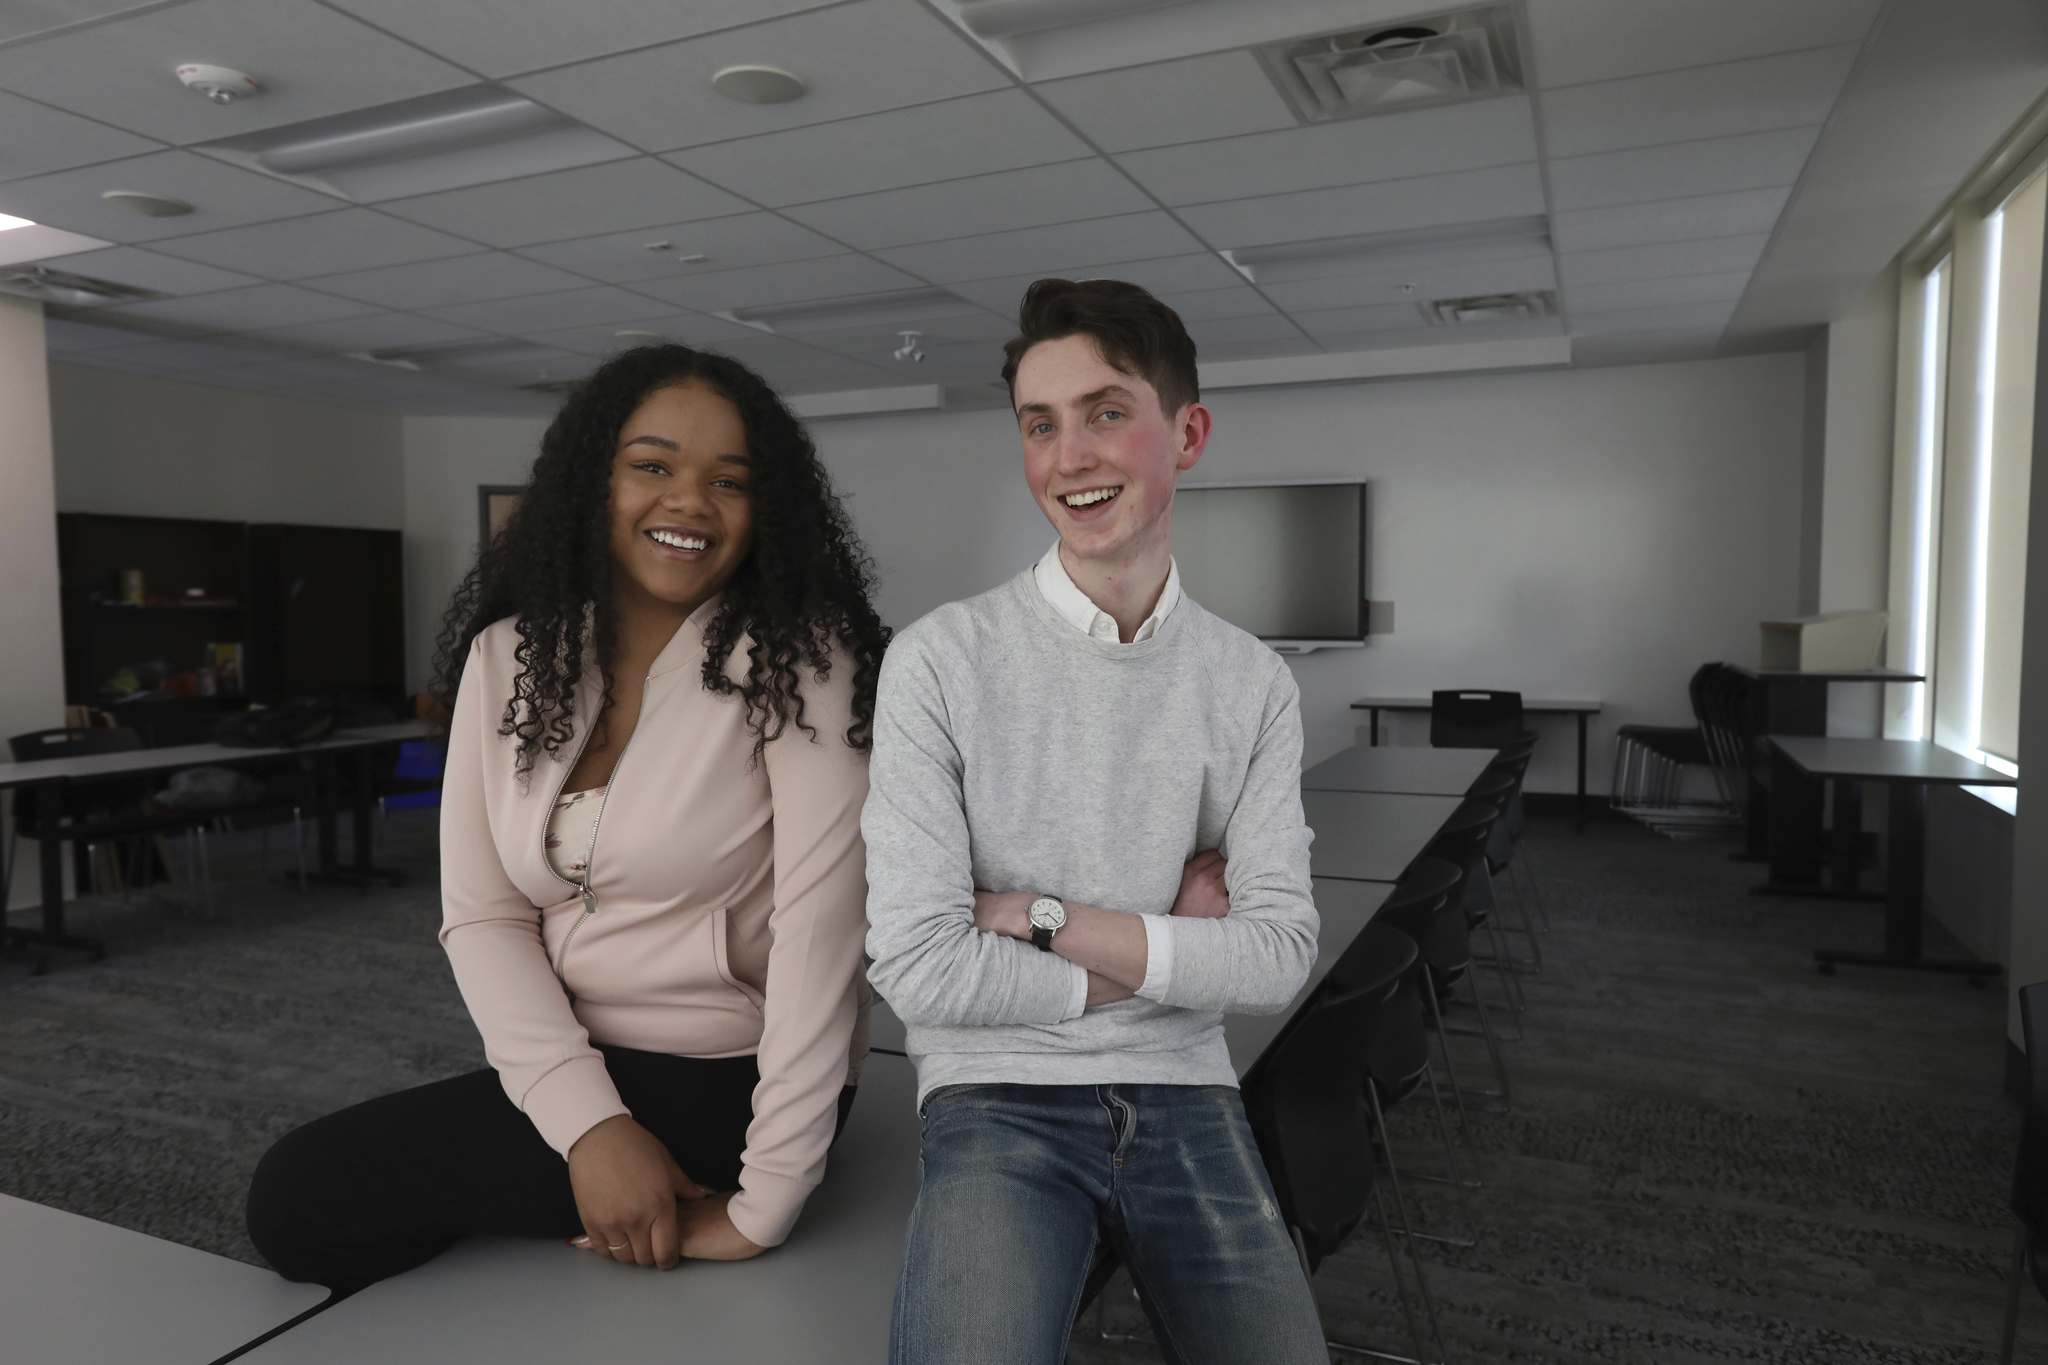 <p>Chelsea Bannatyne, left, and Riley Black are students in the Youth United@Winnipeg summer job program at University of Winnipeg Merchant&rsquo;s Corner campus.</p>